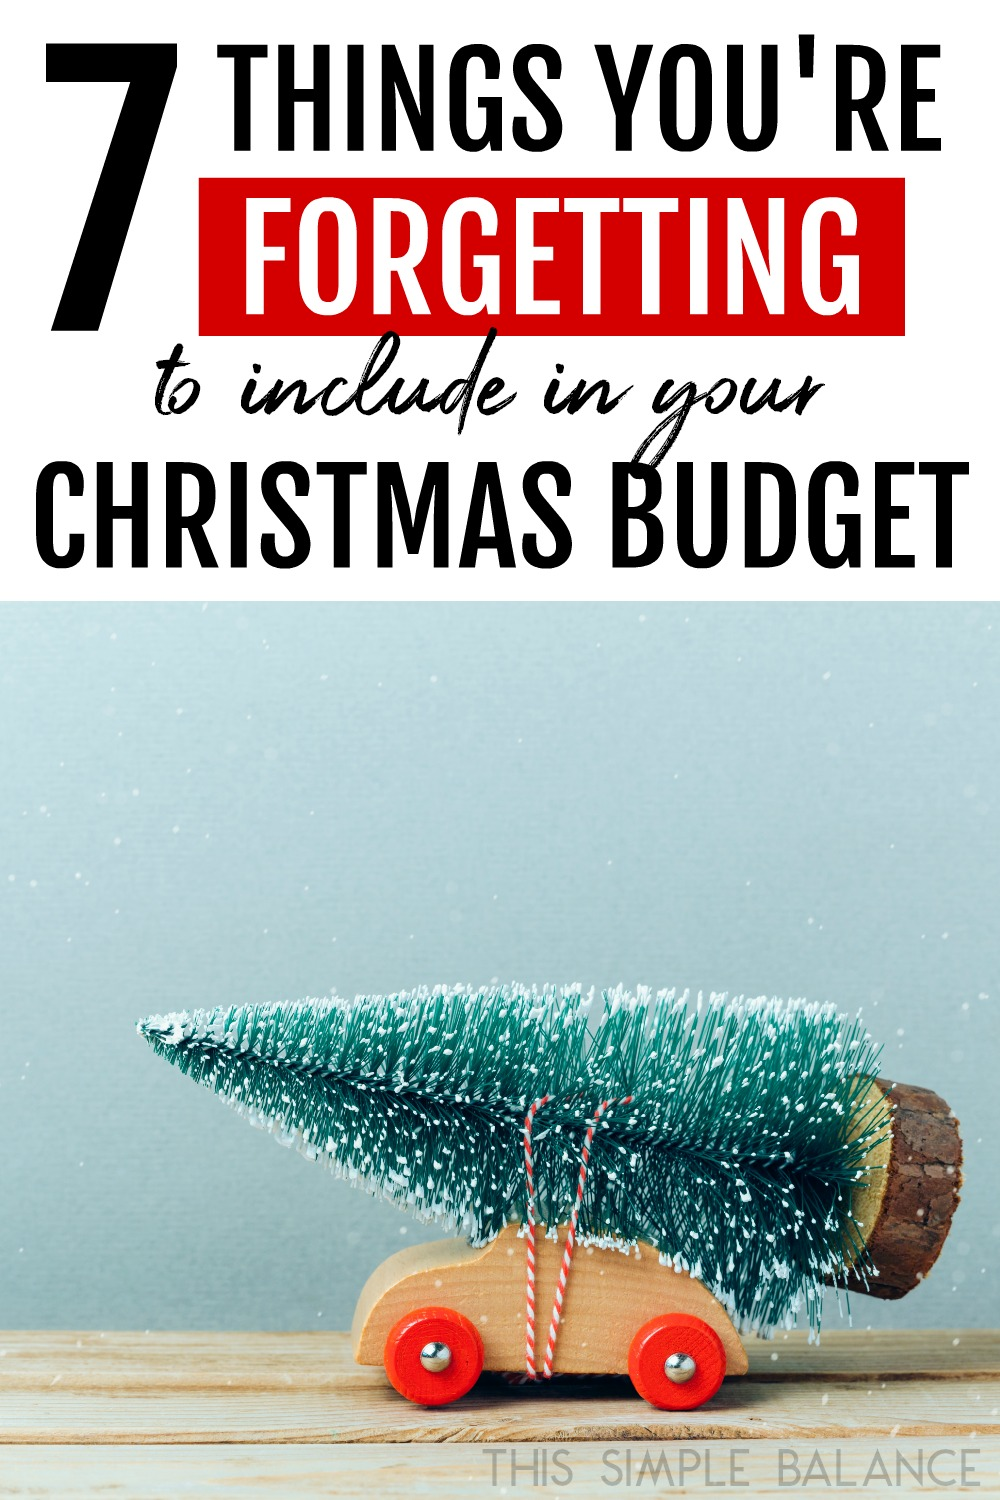 Do you have a realistic Christmas budget? Not if you only thought about the Christmas gifts. These 7 things are common Christmas expenses you need to factor into your Christmas budget or you will spend far more than you planned!